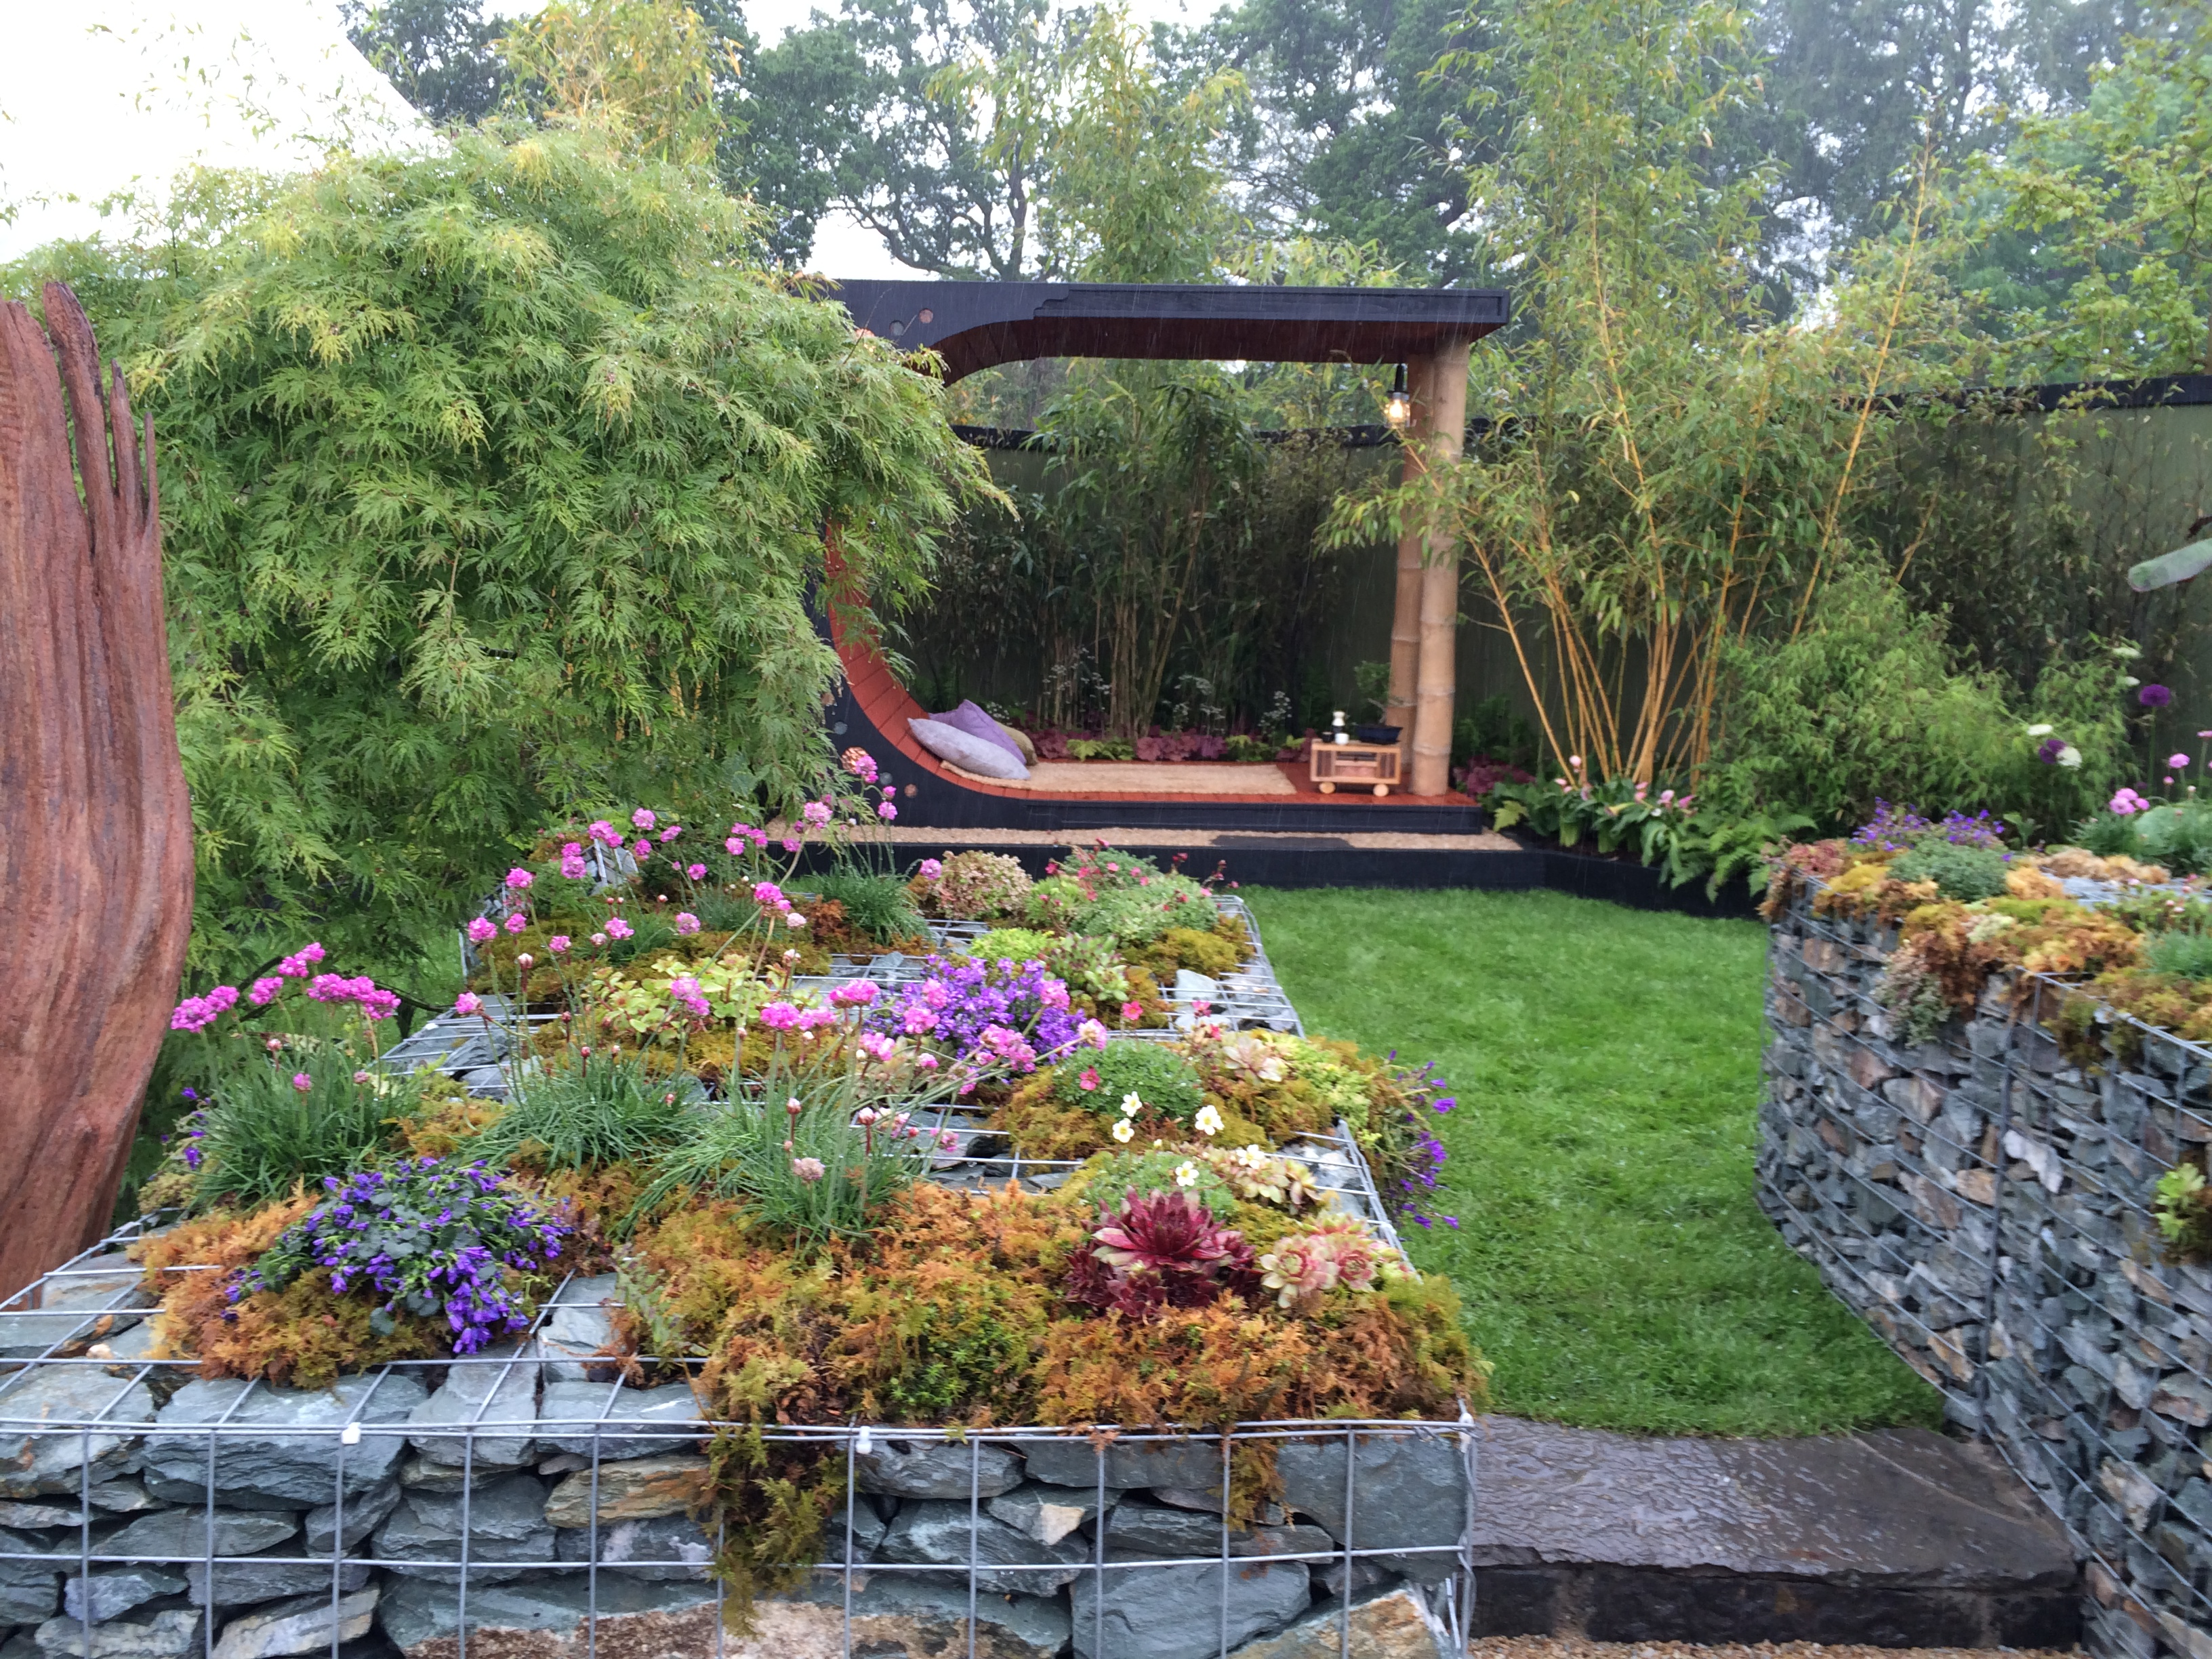 Irish garden design showcased bloom 2014 jardin for Garden design fest 2014